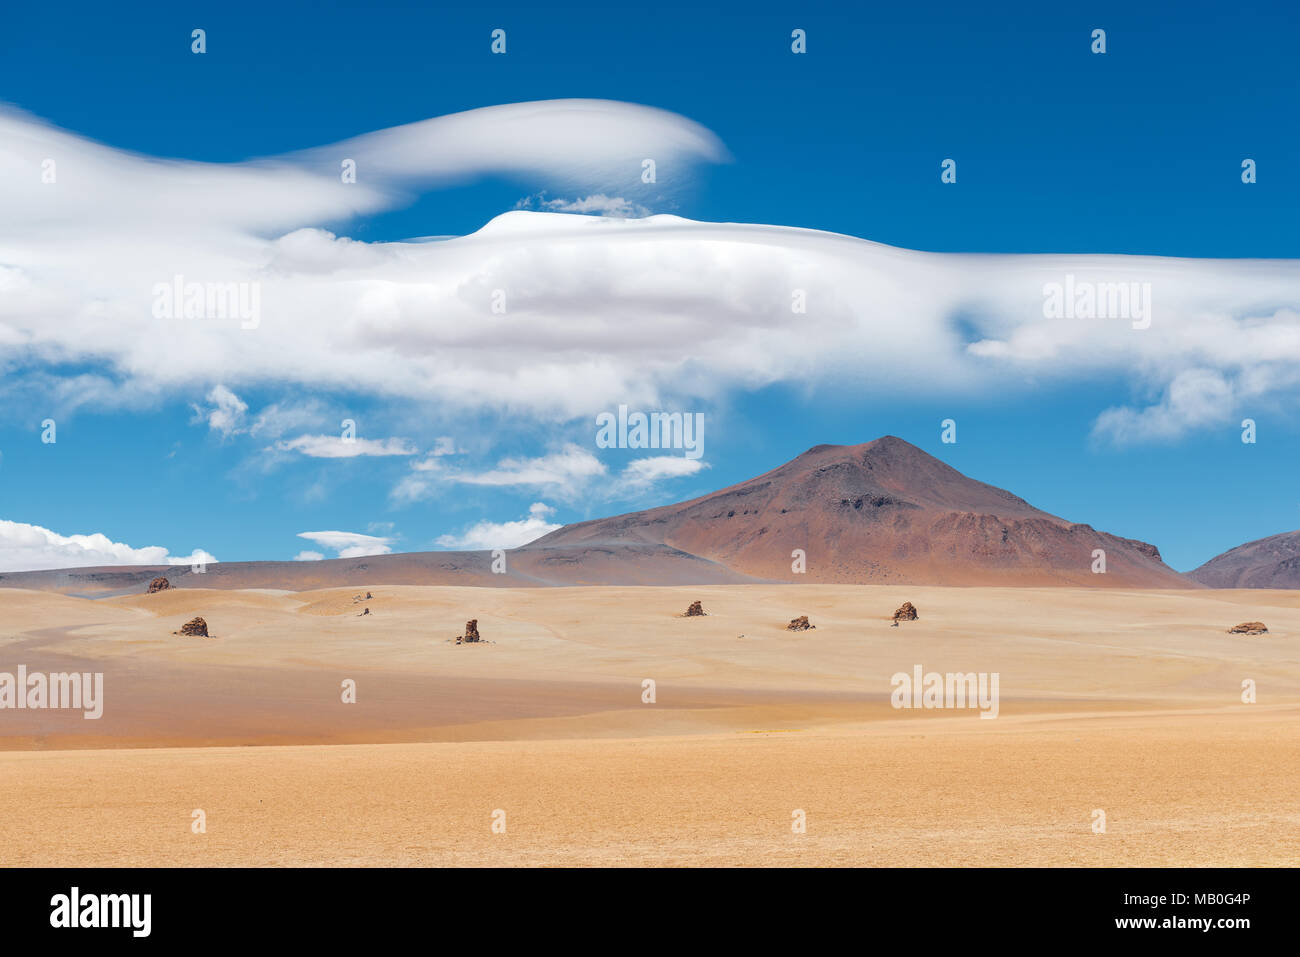 The Dali Desert near the Uyuni Salt Flat (Salar de Uyuni) with rock formations and clouds that could have been drawn by the master himself, Bolivia. Stock Photo